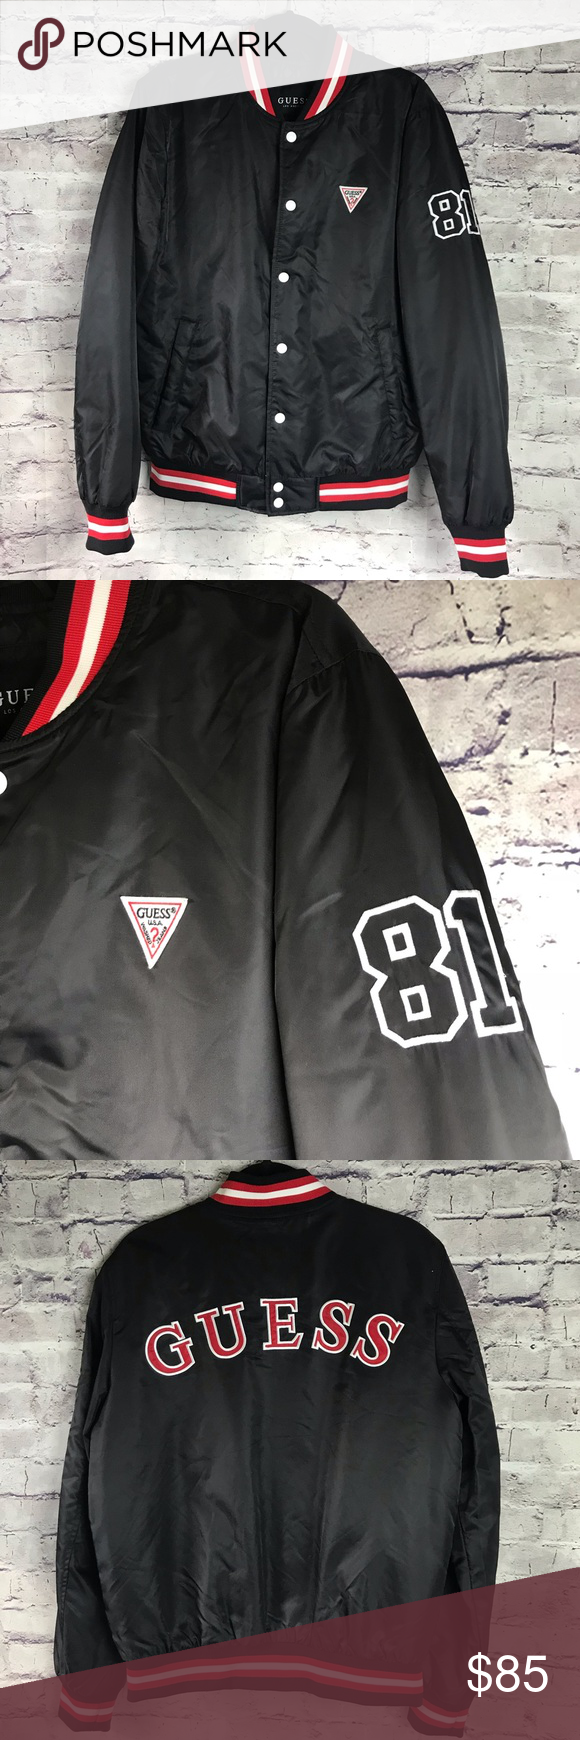 "Guess Bomber Varsity Jacket NWOT! NWOT! Guess Los Angeles, Black, Red and White Bomber Varsity Jacket. Quilted Interior. Size Medium.  Measured Flat- Chest 23"" Length 27"" Sleeve 27"" Guess Jackets & Coats Bomber & Varsity #varsityjacketoutfit"